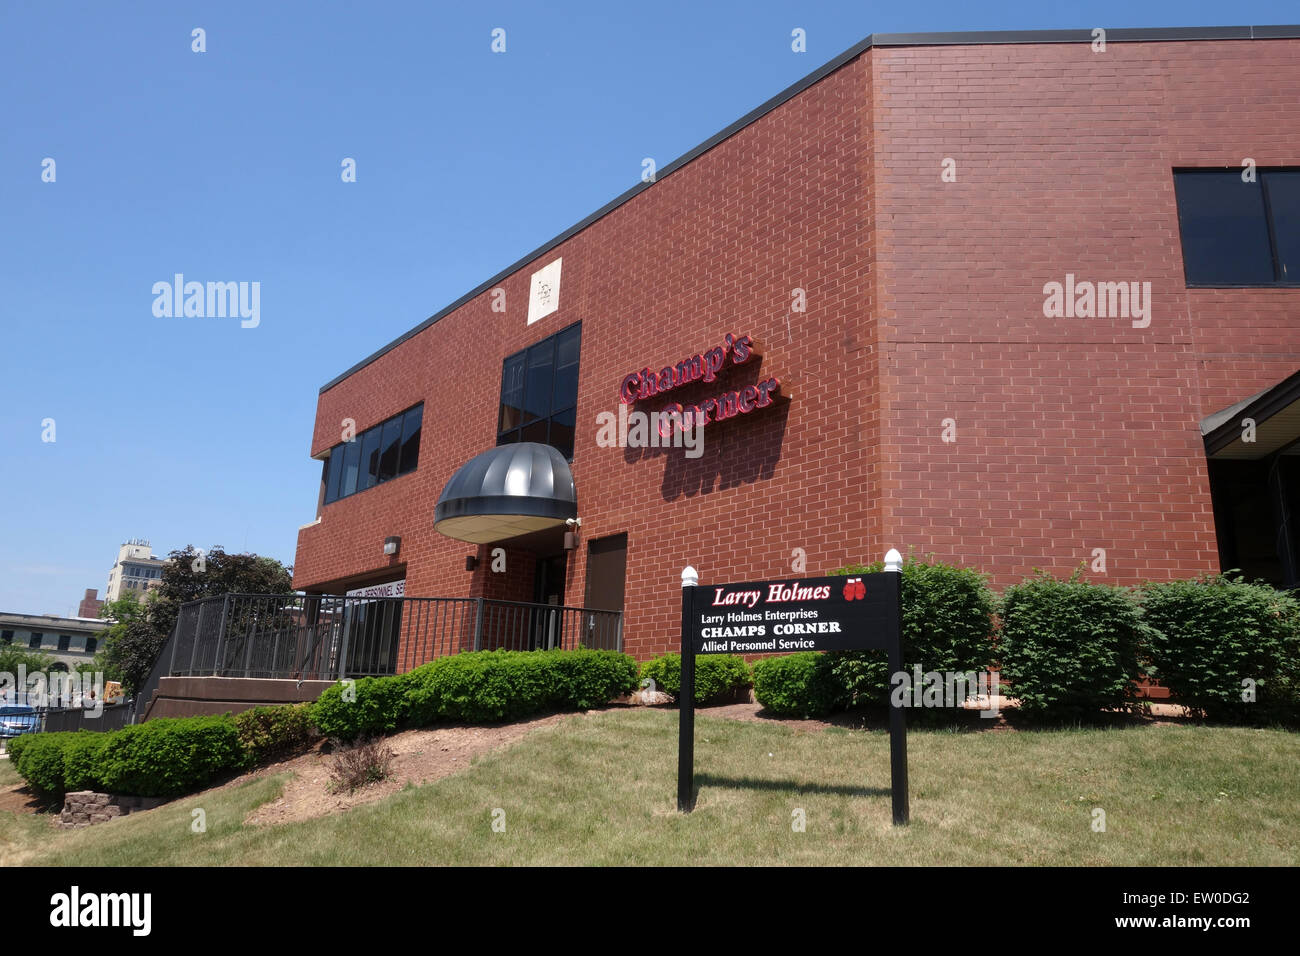 Larry Holmes enterprises, champ's corner, bar restaurant, by boxer Larry Holmes, Easton, PA. USA. - Stock Image